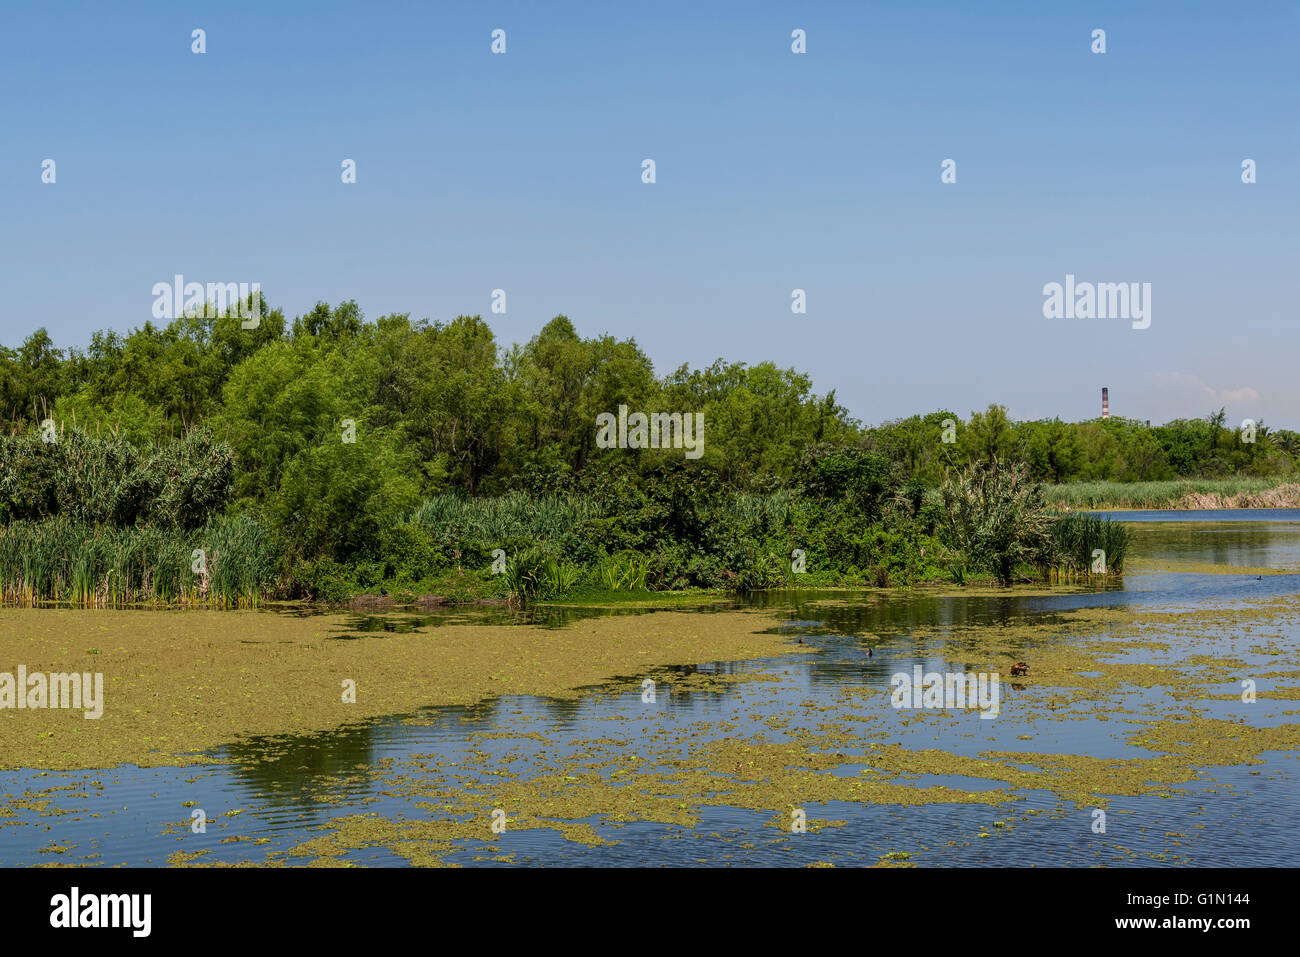 Costanera Sur Ecological Reserve, Buenos Aires, Argentina - Stock Image